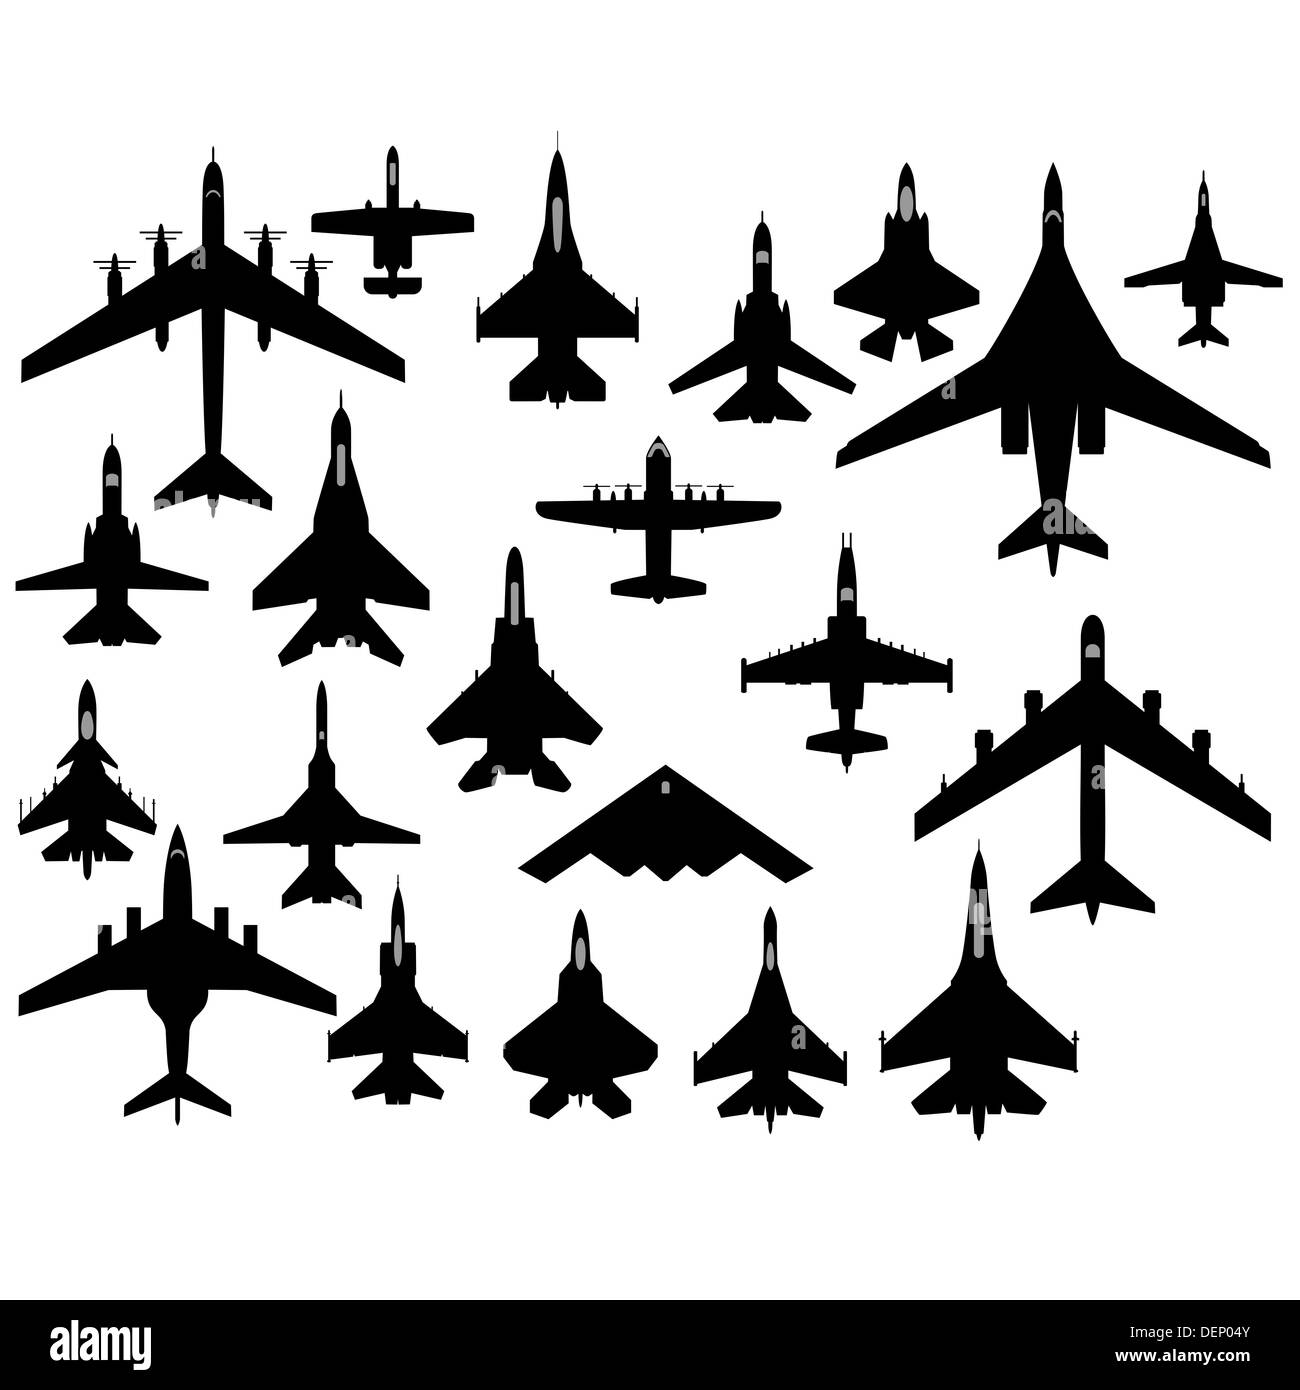 The contours of aircraft military aircraft. The illustration on a white background. - Stock Image